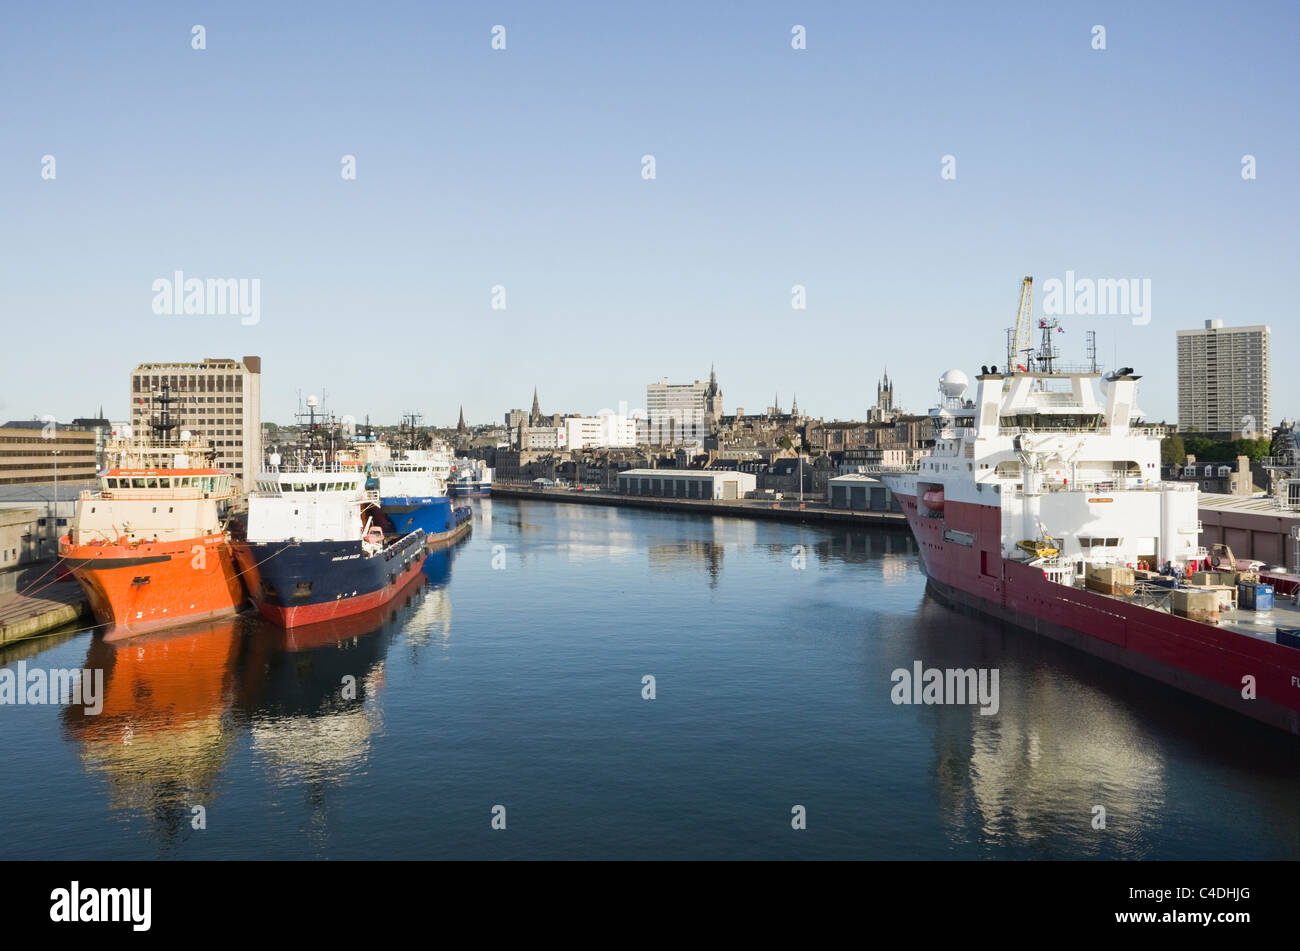 Ships docked in port supplying the rigs for the North Sea offshore oil industry. Aberdeen, Aberdeenshire, Scotland, - Stock Image